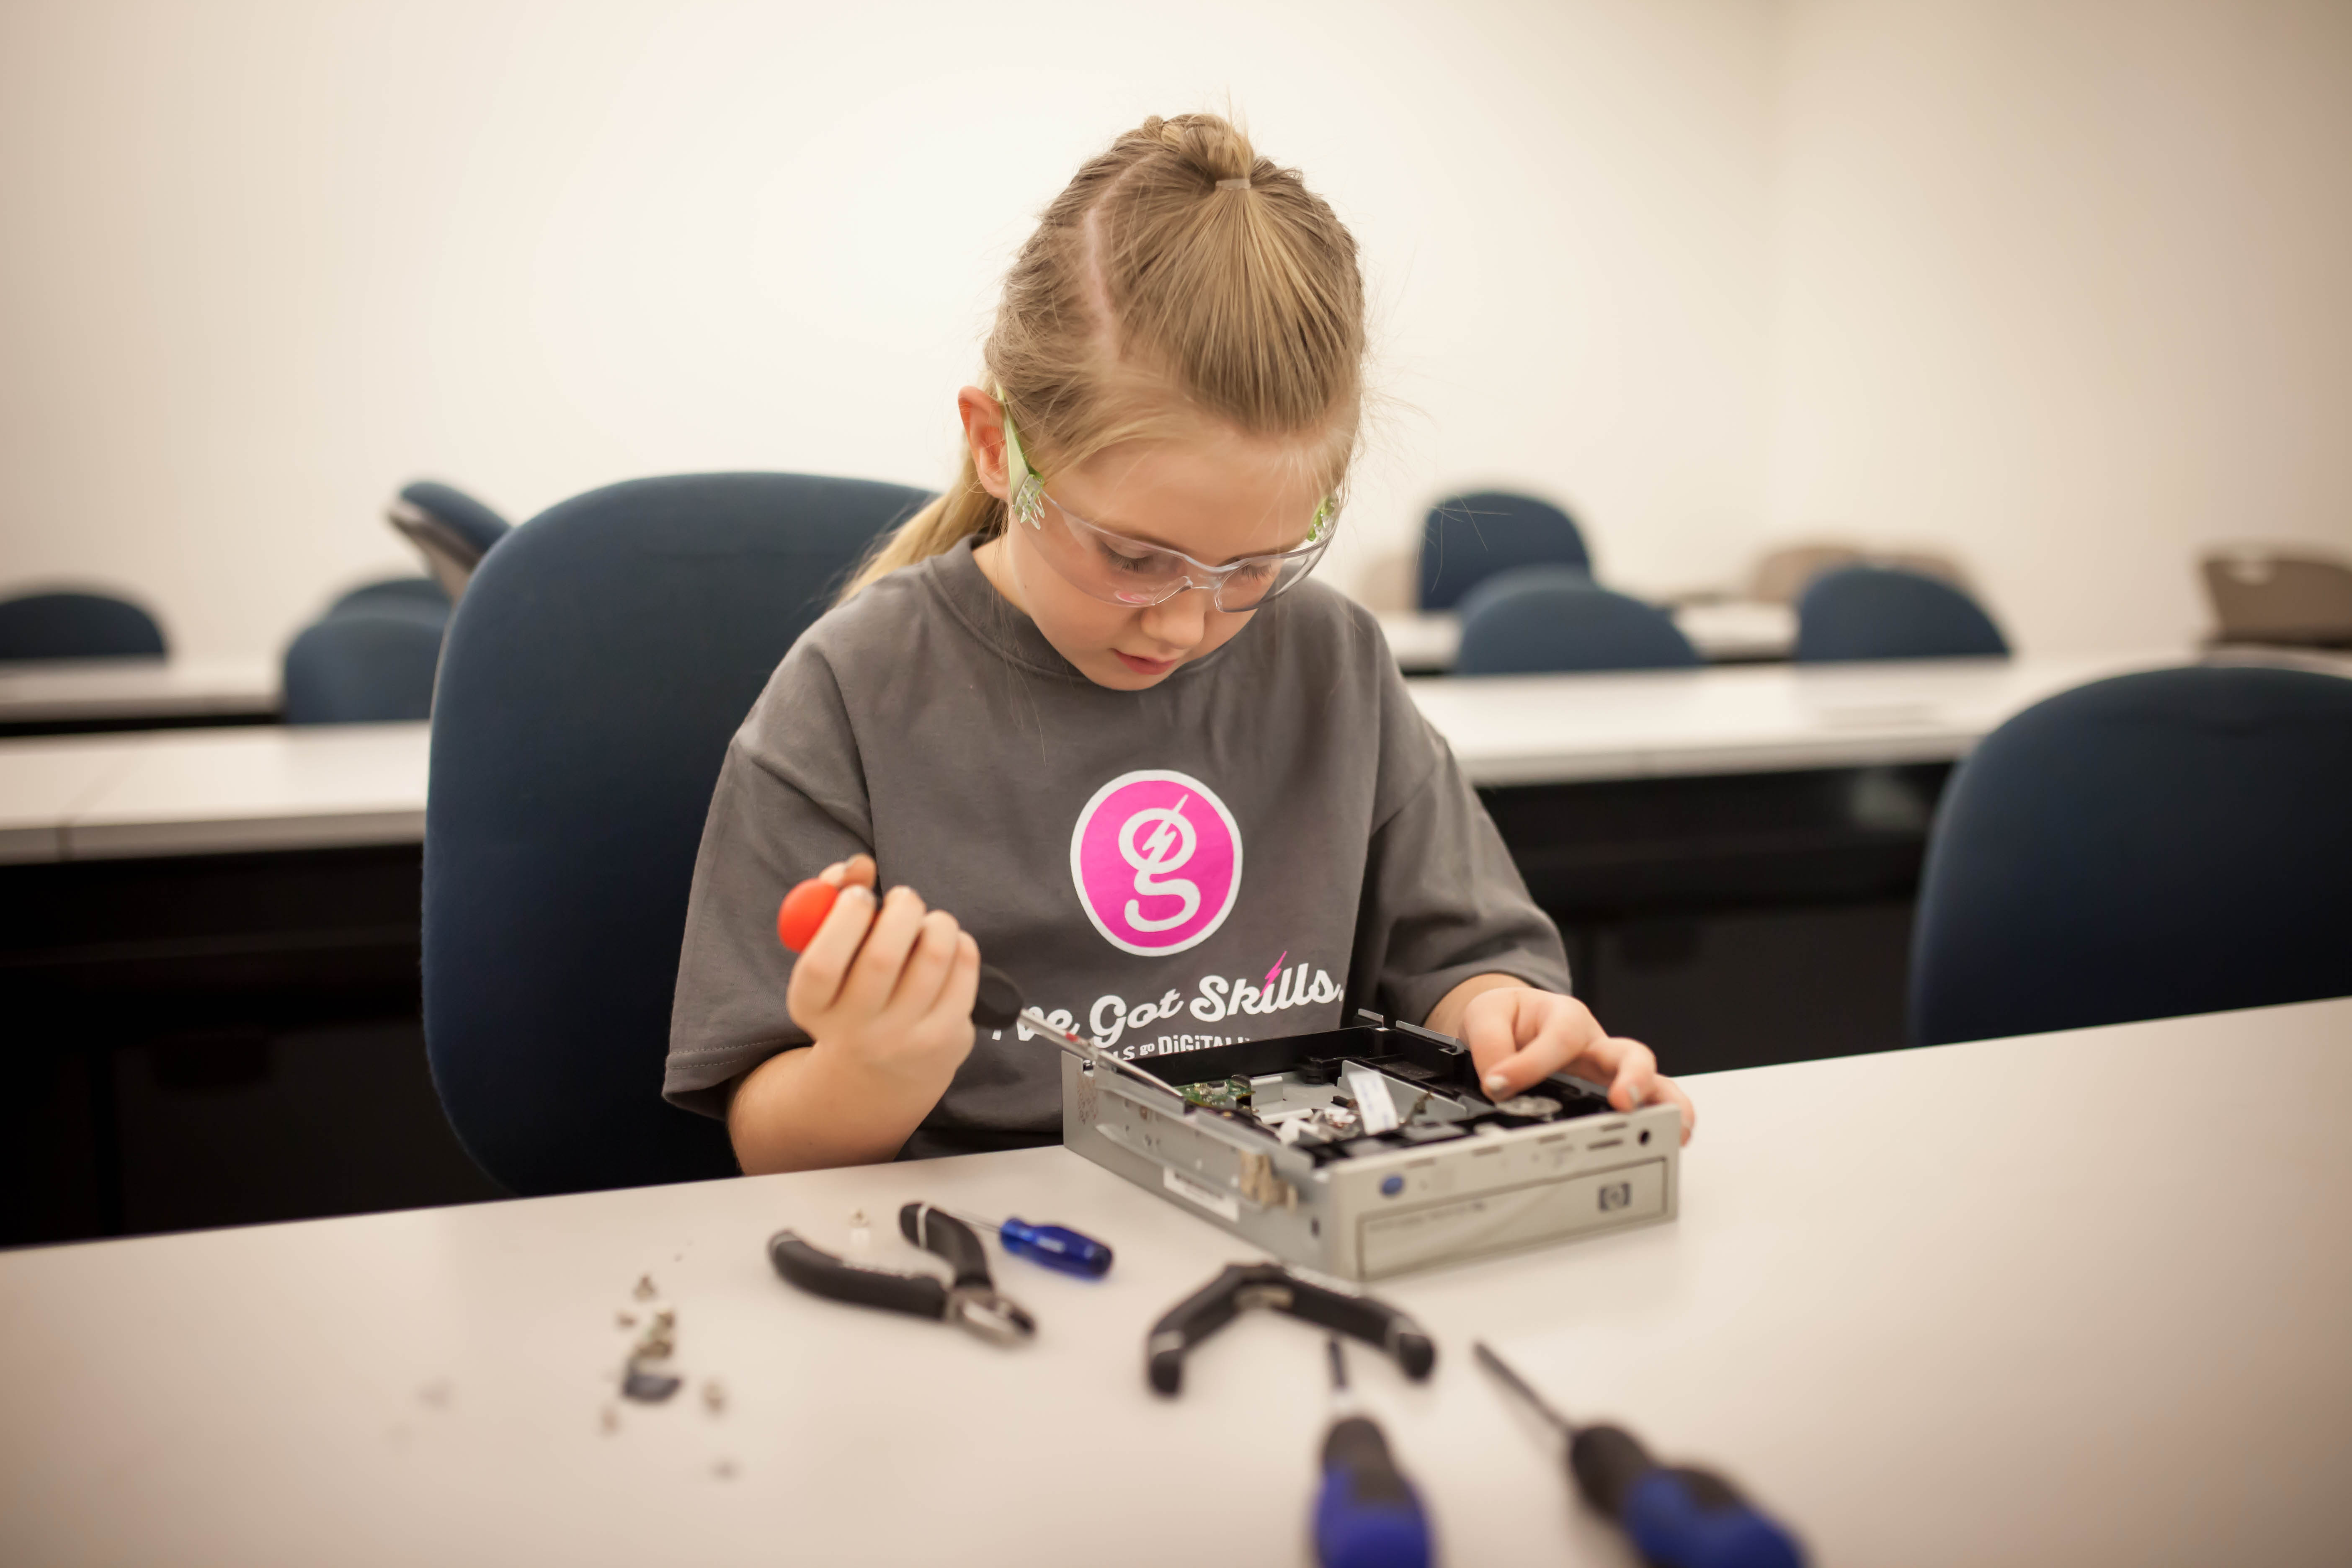 A girl works on an optical drive at a Girls go Digital camp, date and location not specified | Photo courtesy of Girls go Digital, St. George News